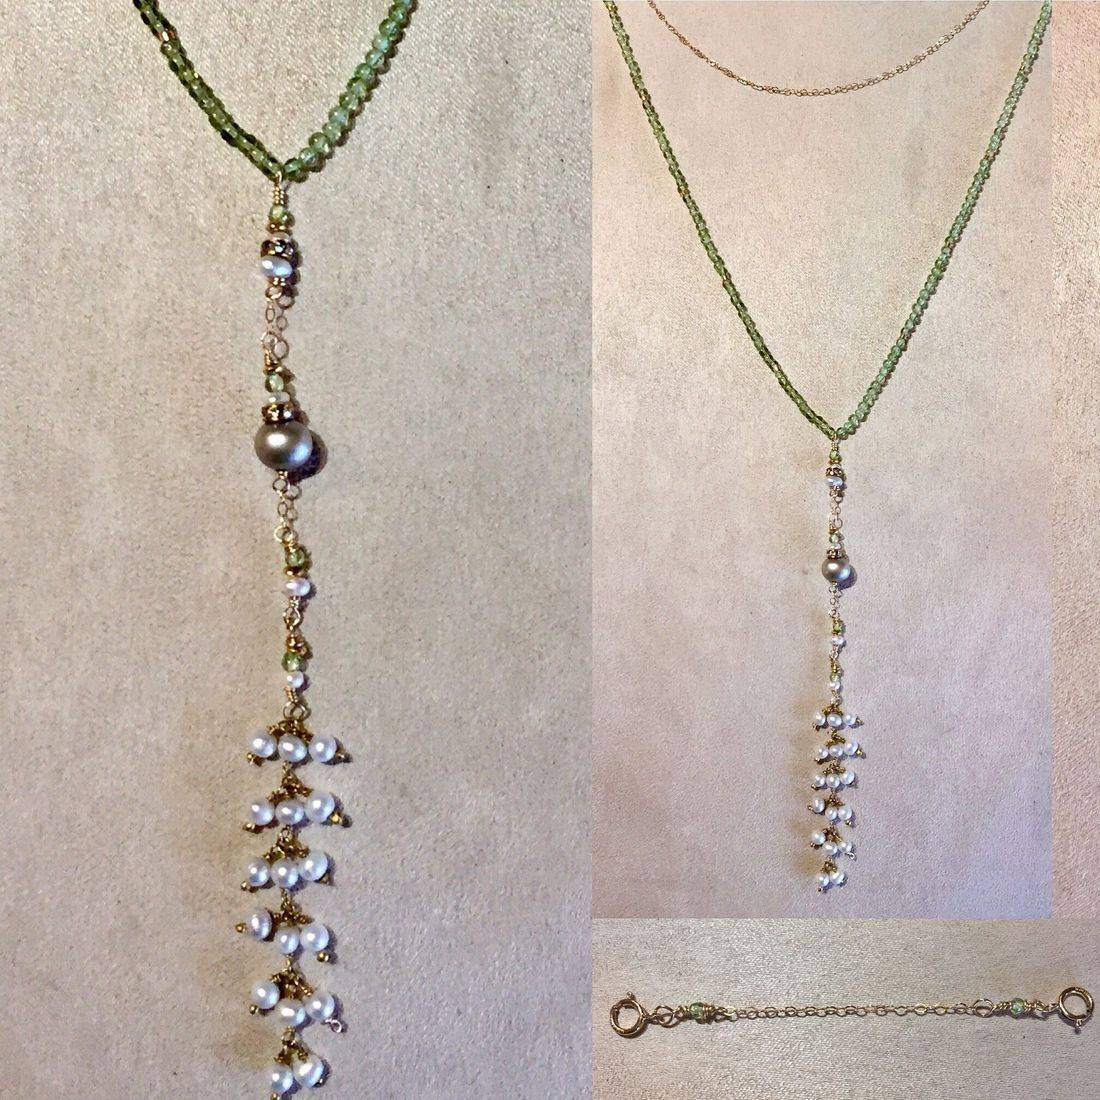 "5"" perodot & pearl drop necklace, 25"" overall, edwardian style, worn long or doubled with gemstone & chain connector"